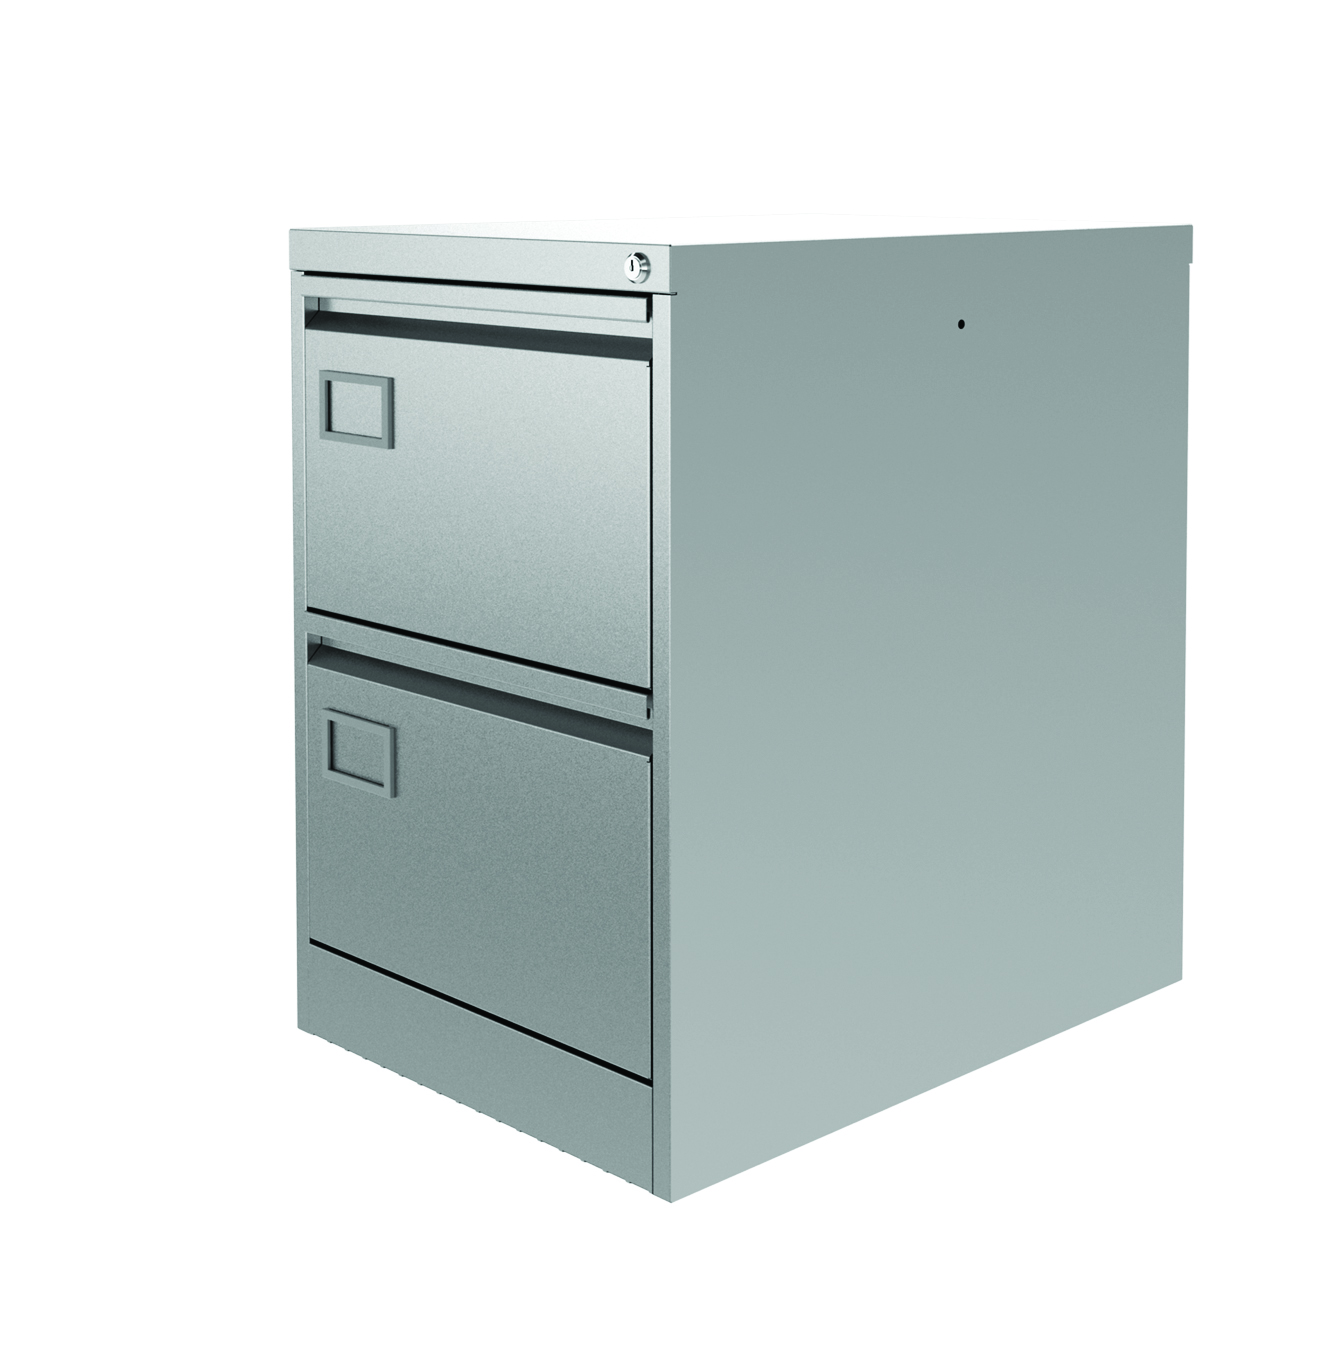 Executive - Filing Cabinet 2 Drawer Foolscap